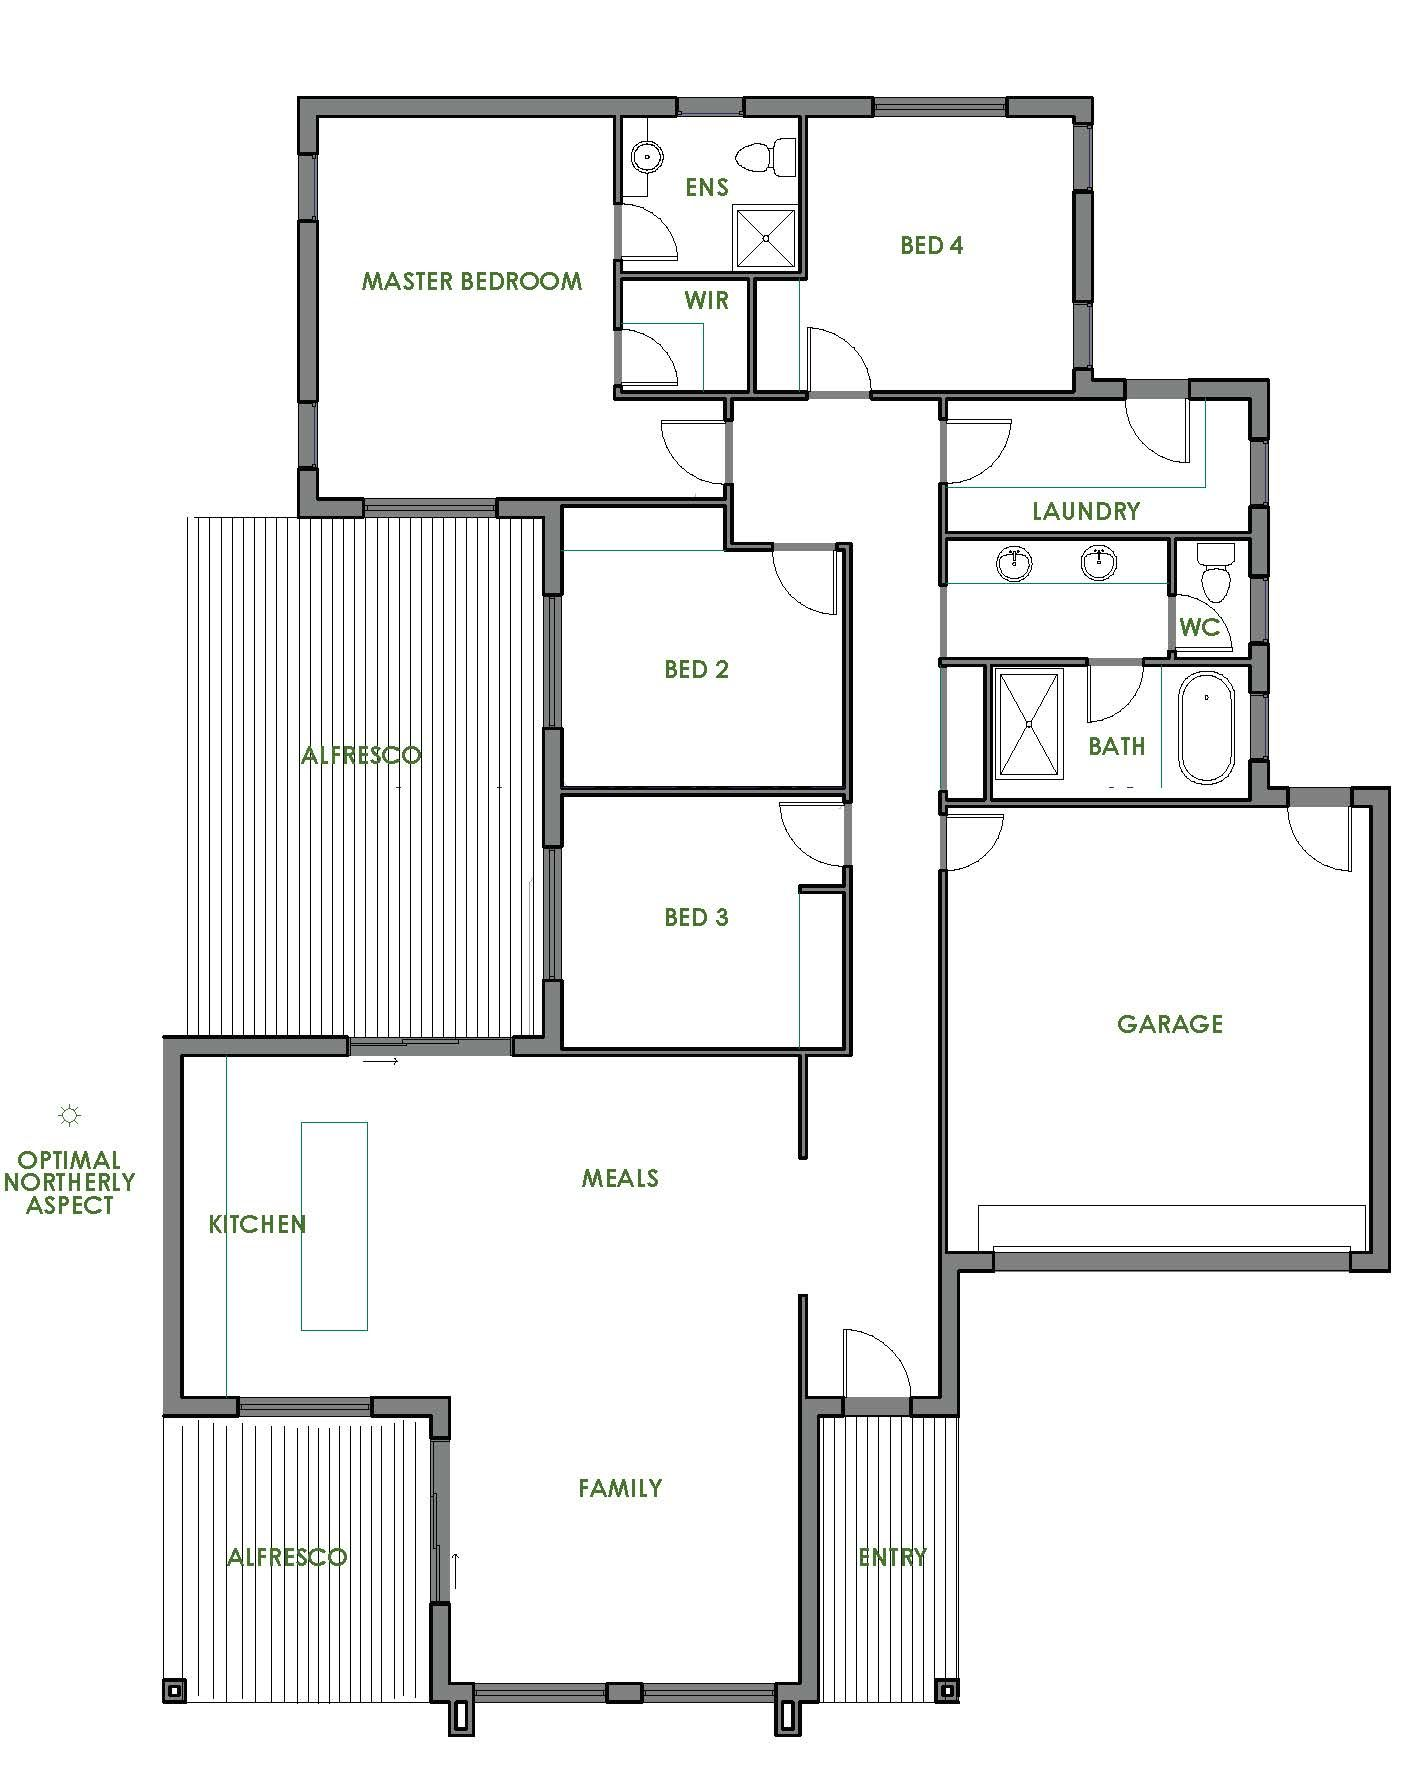 The Riverland Is A Stunning And Spacious Energy Efficient Home Design Offered By Green Homes Austral House Plans Energy Efficient House Plans Home Design Plans